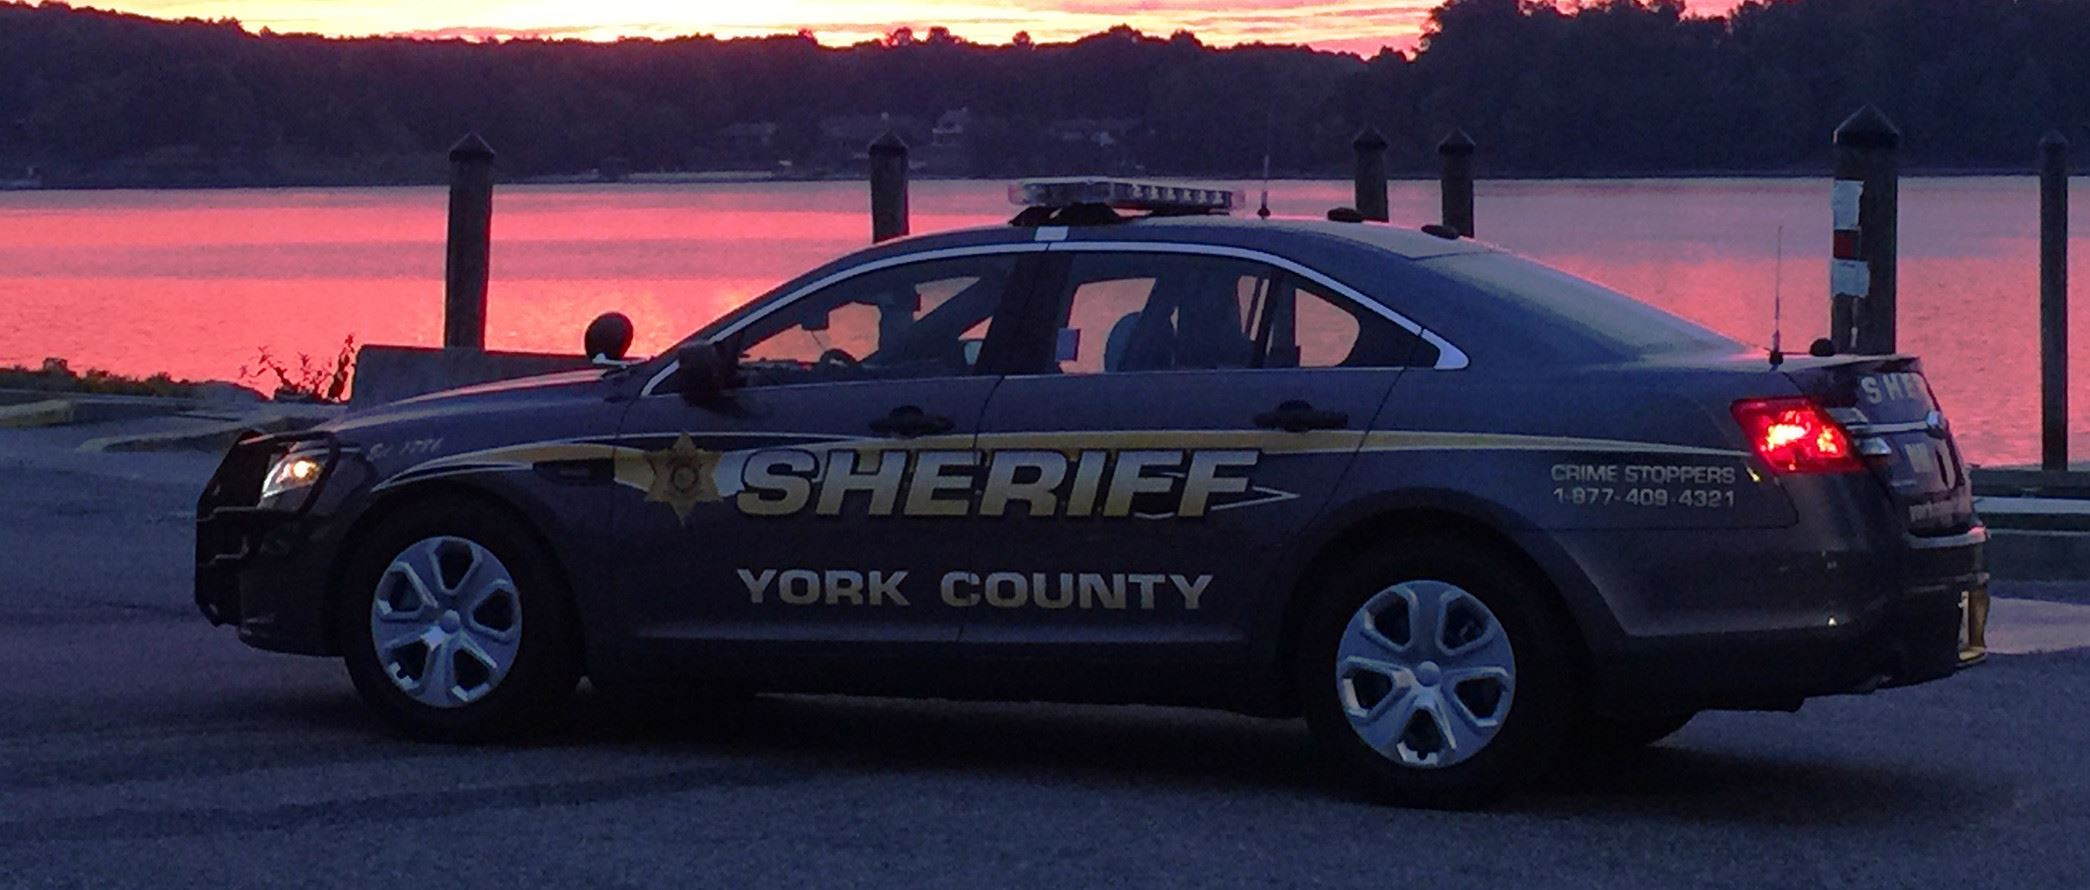 York County Sheriffs, SC | Official Website